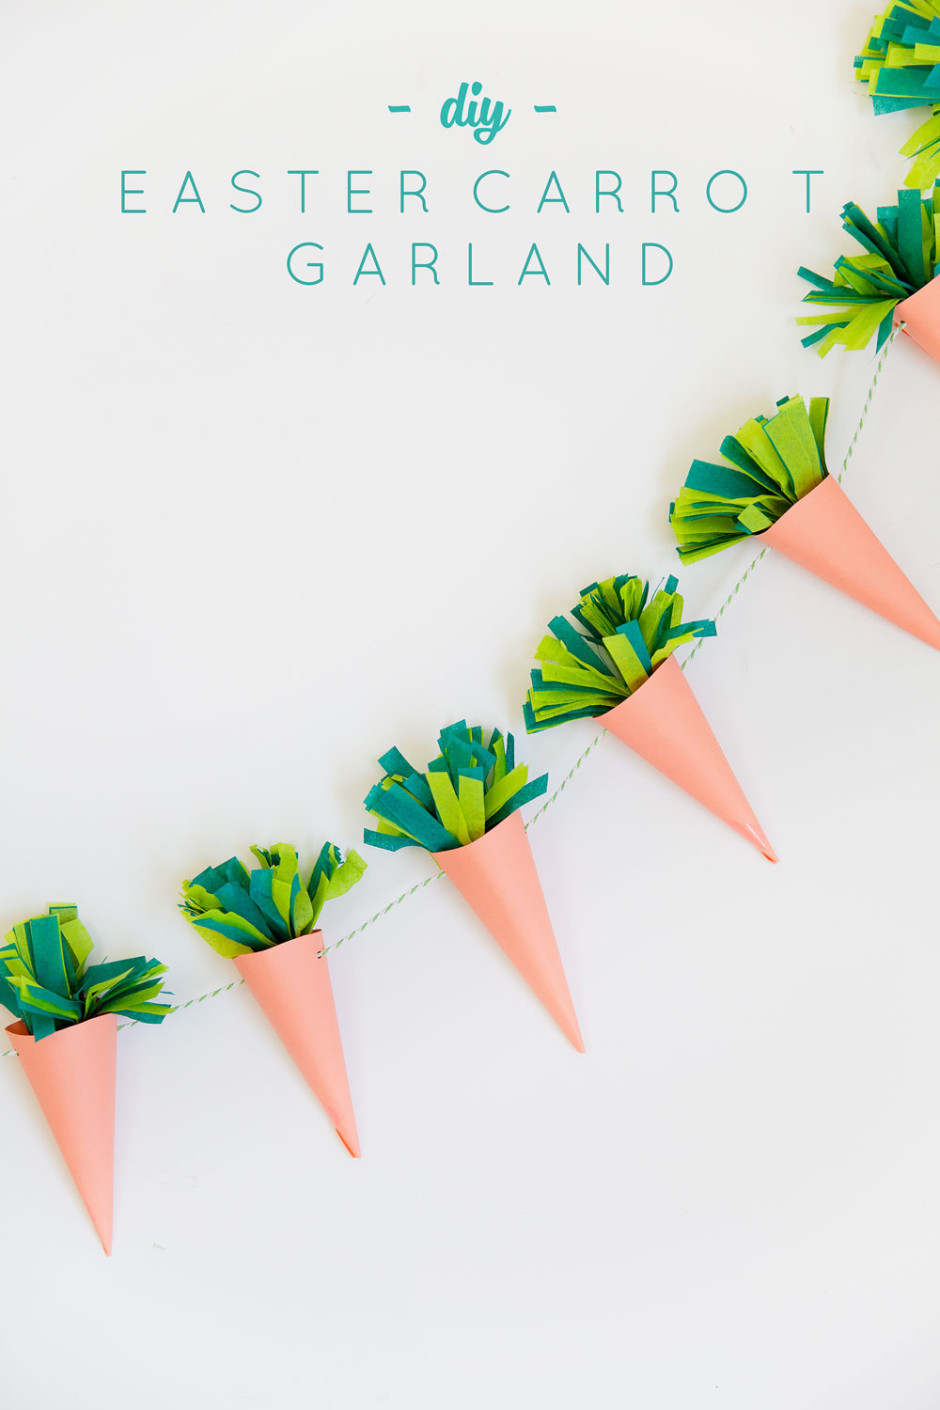 Easter-carrot-garland